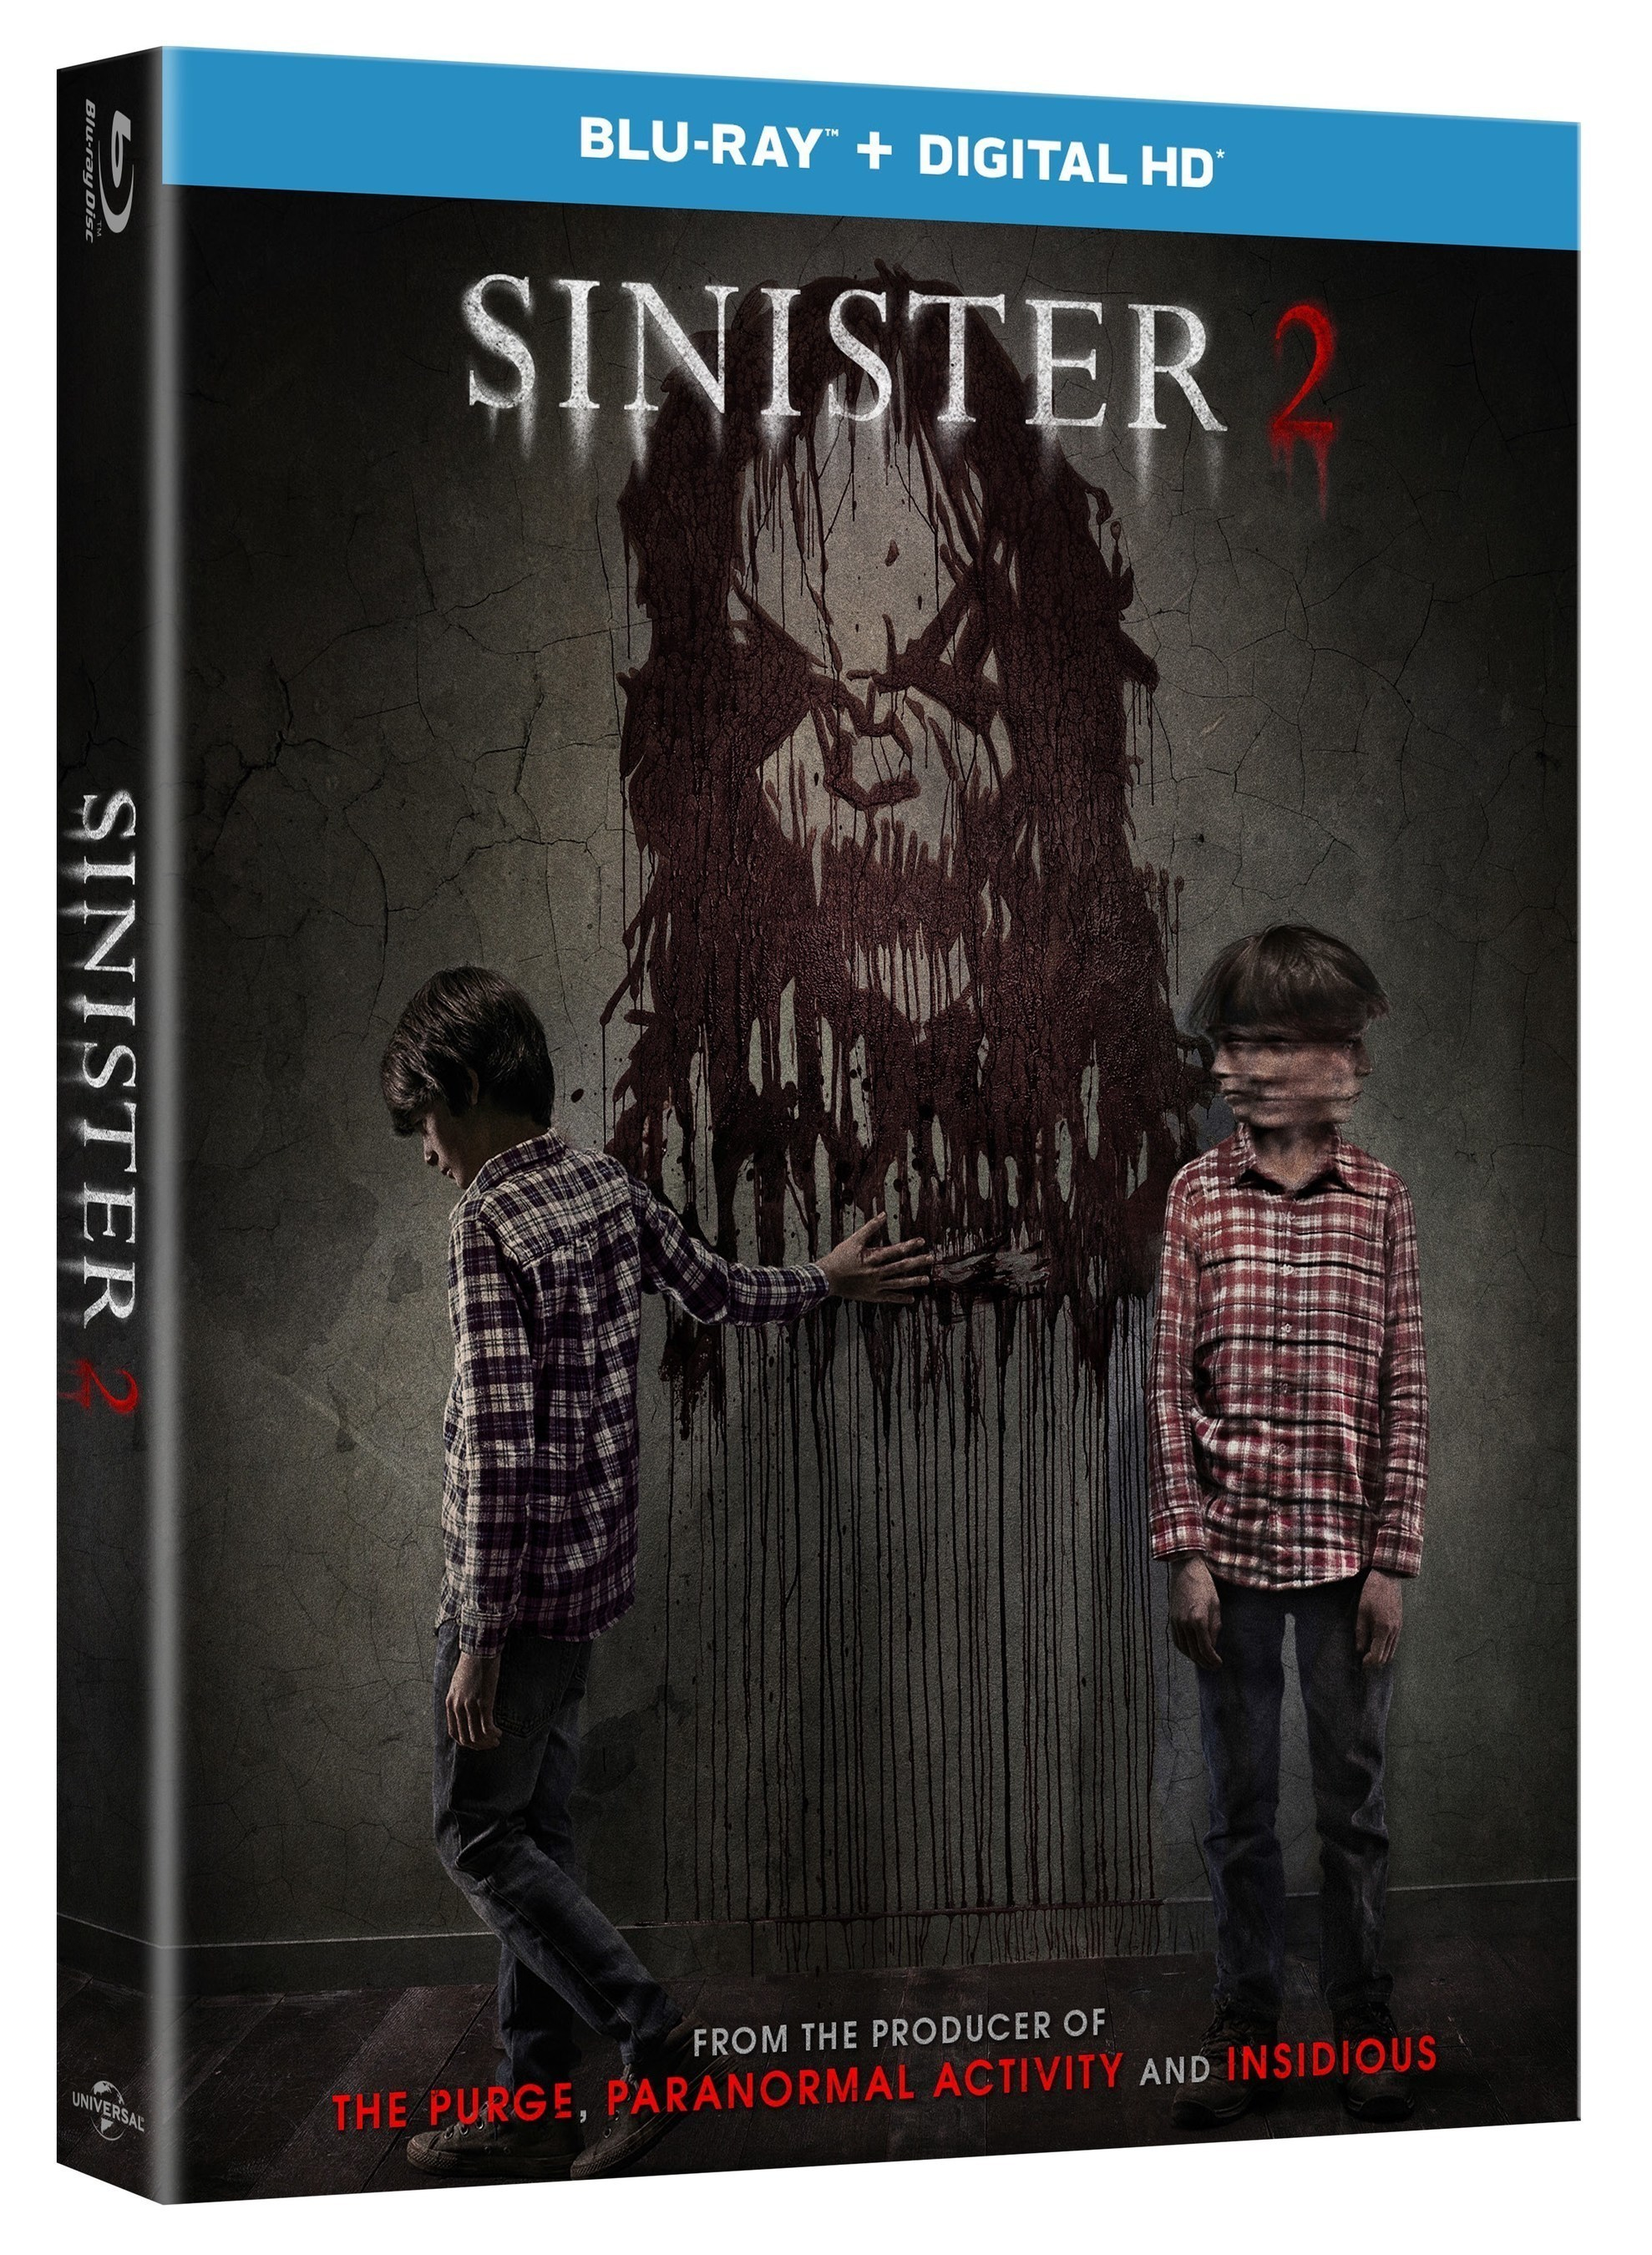 From Universal Pictures Home Entertainment: Sinister 2